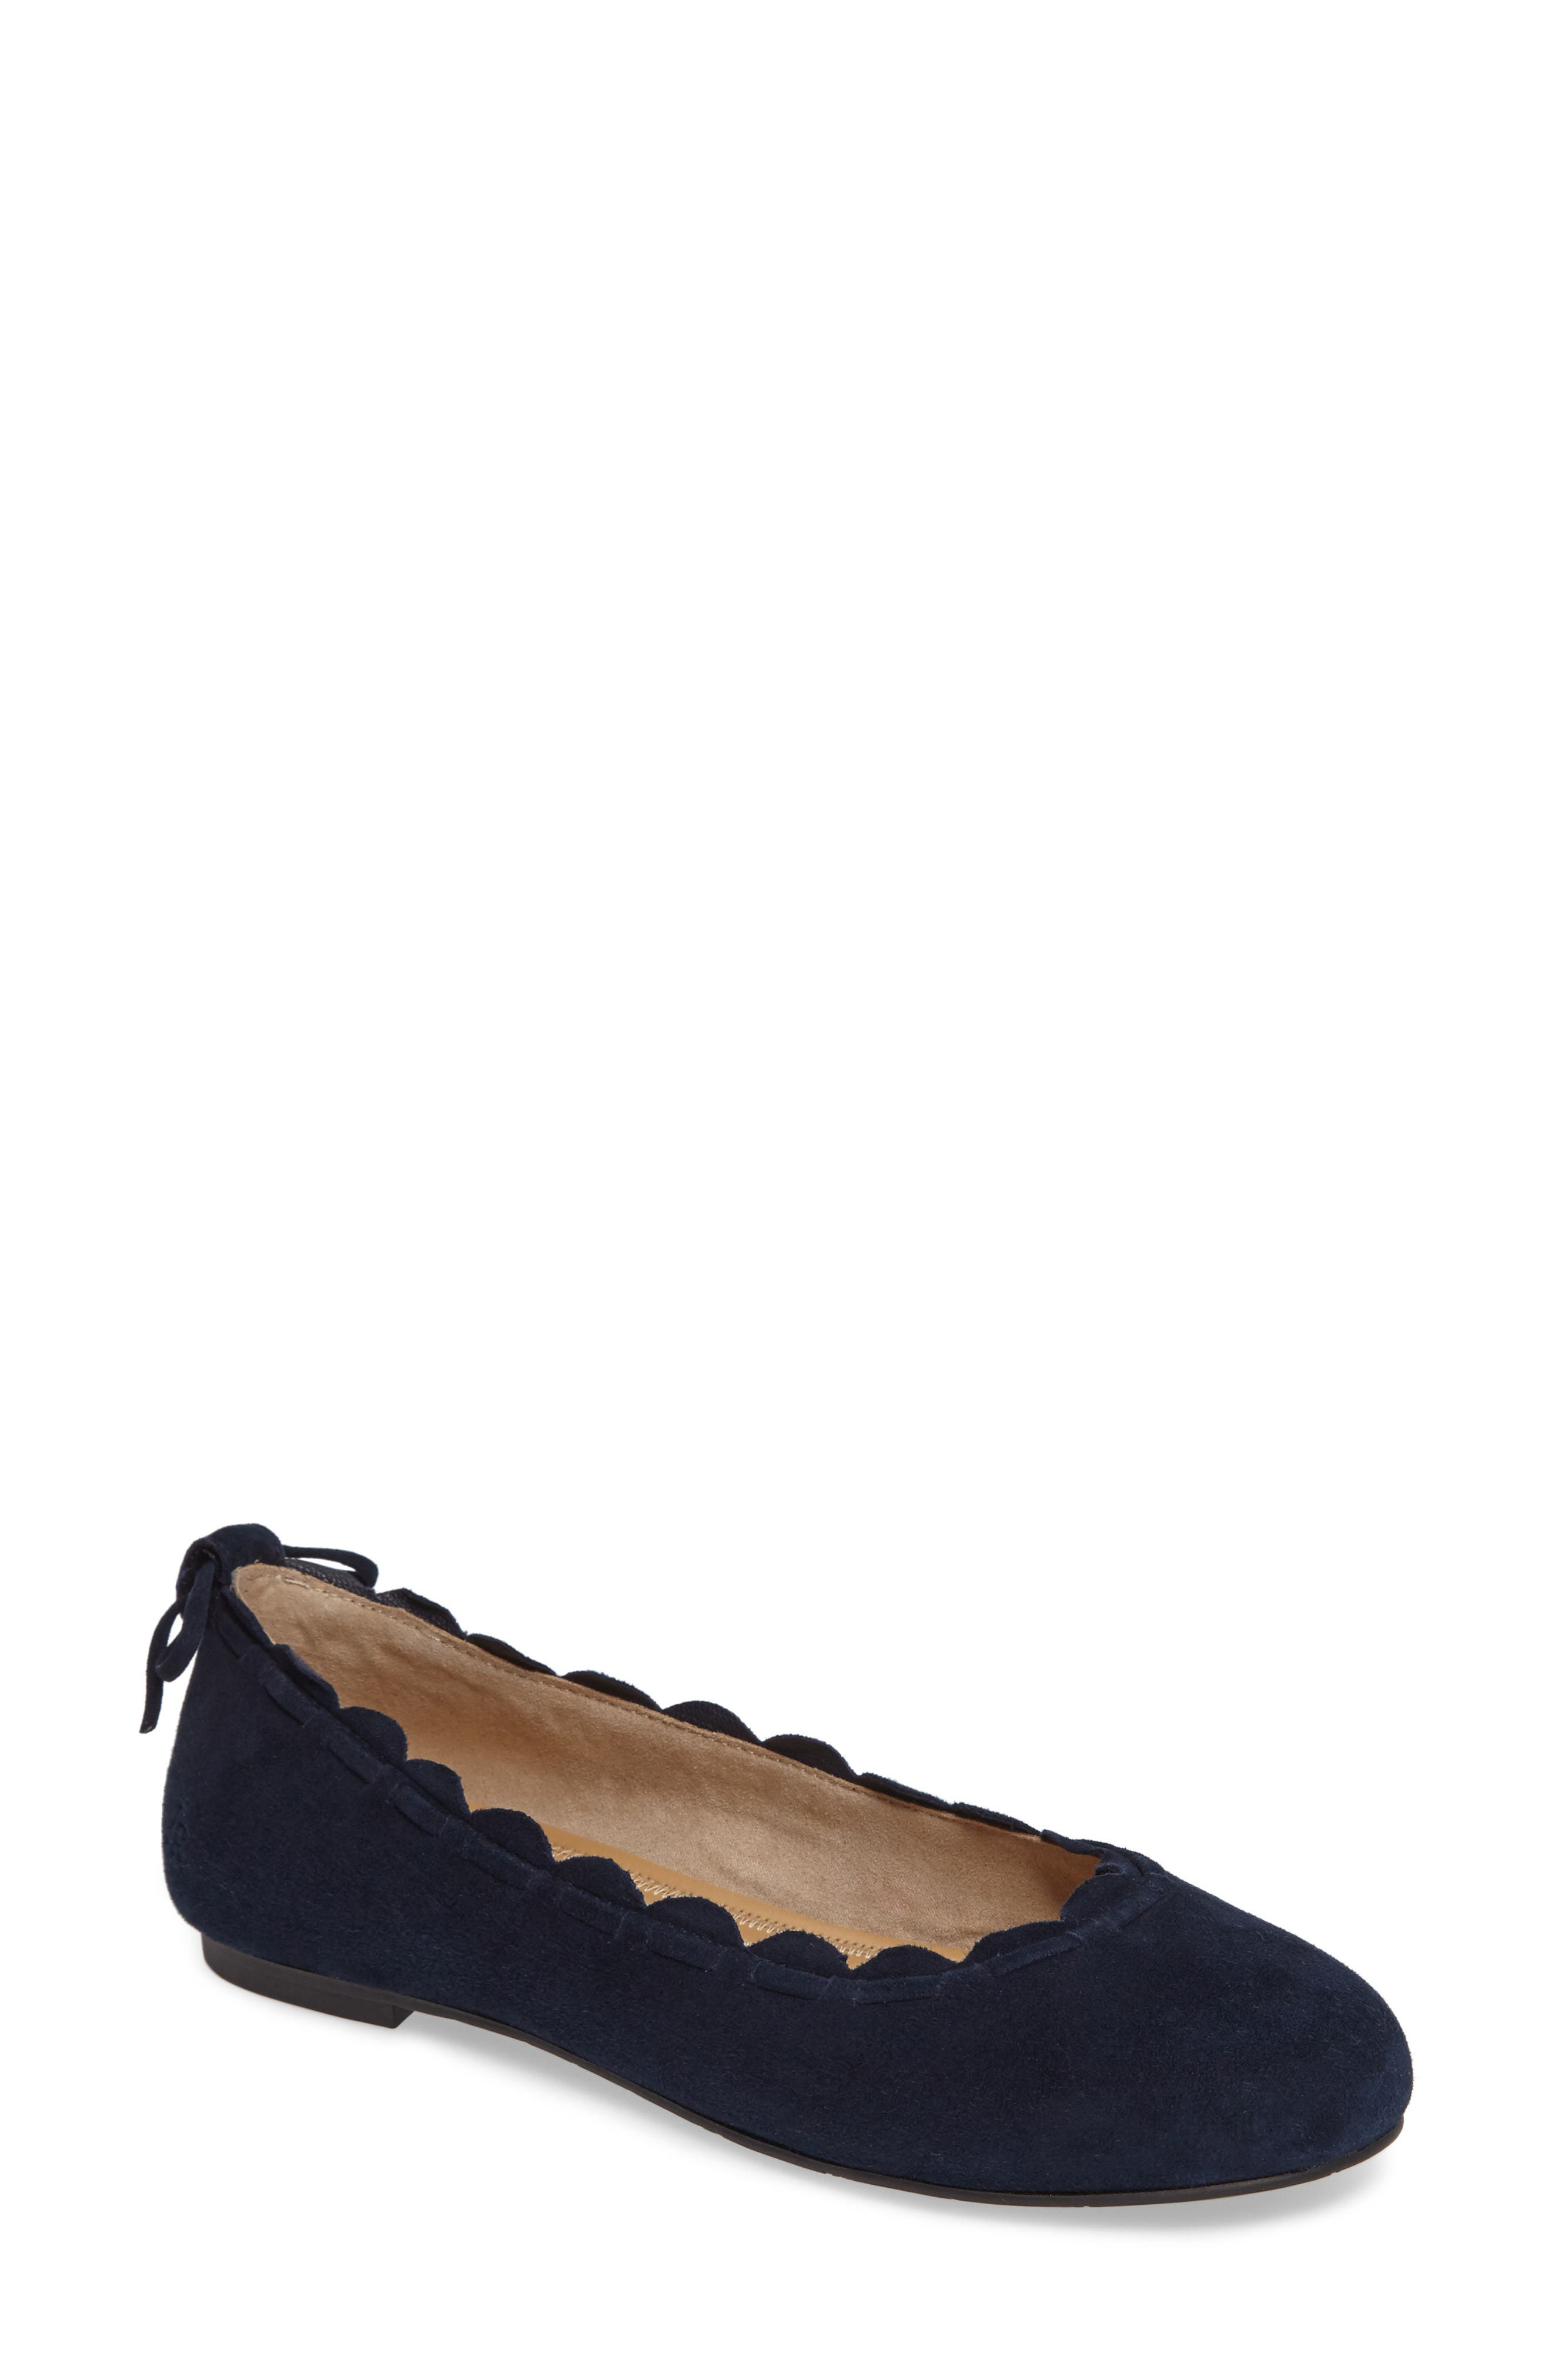 Main Image - Jack Rogers Lucie Scalloped Flat (Women)